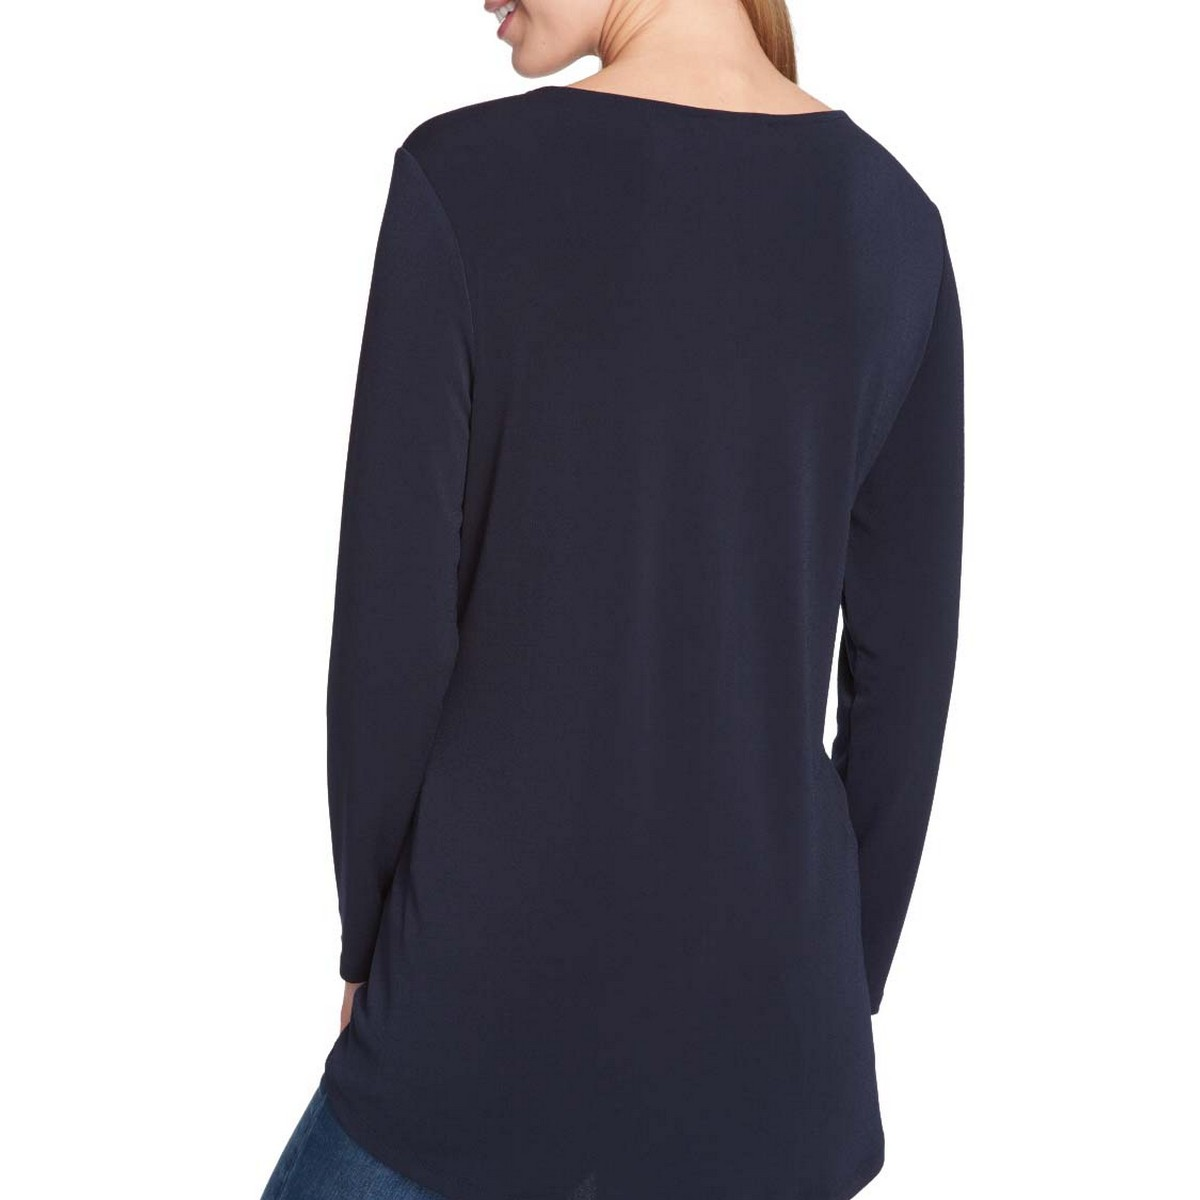 TOMMY-HILFIGER-NEW-Women-039-s-Long-Sleeve-Keyhole-Blouse-Shirt-Top-TEDO thumbnail 6